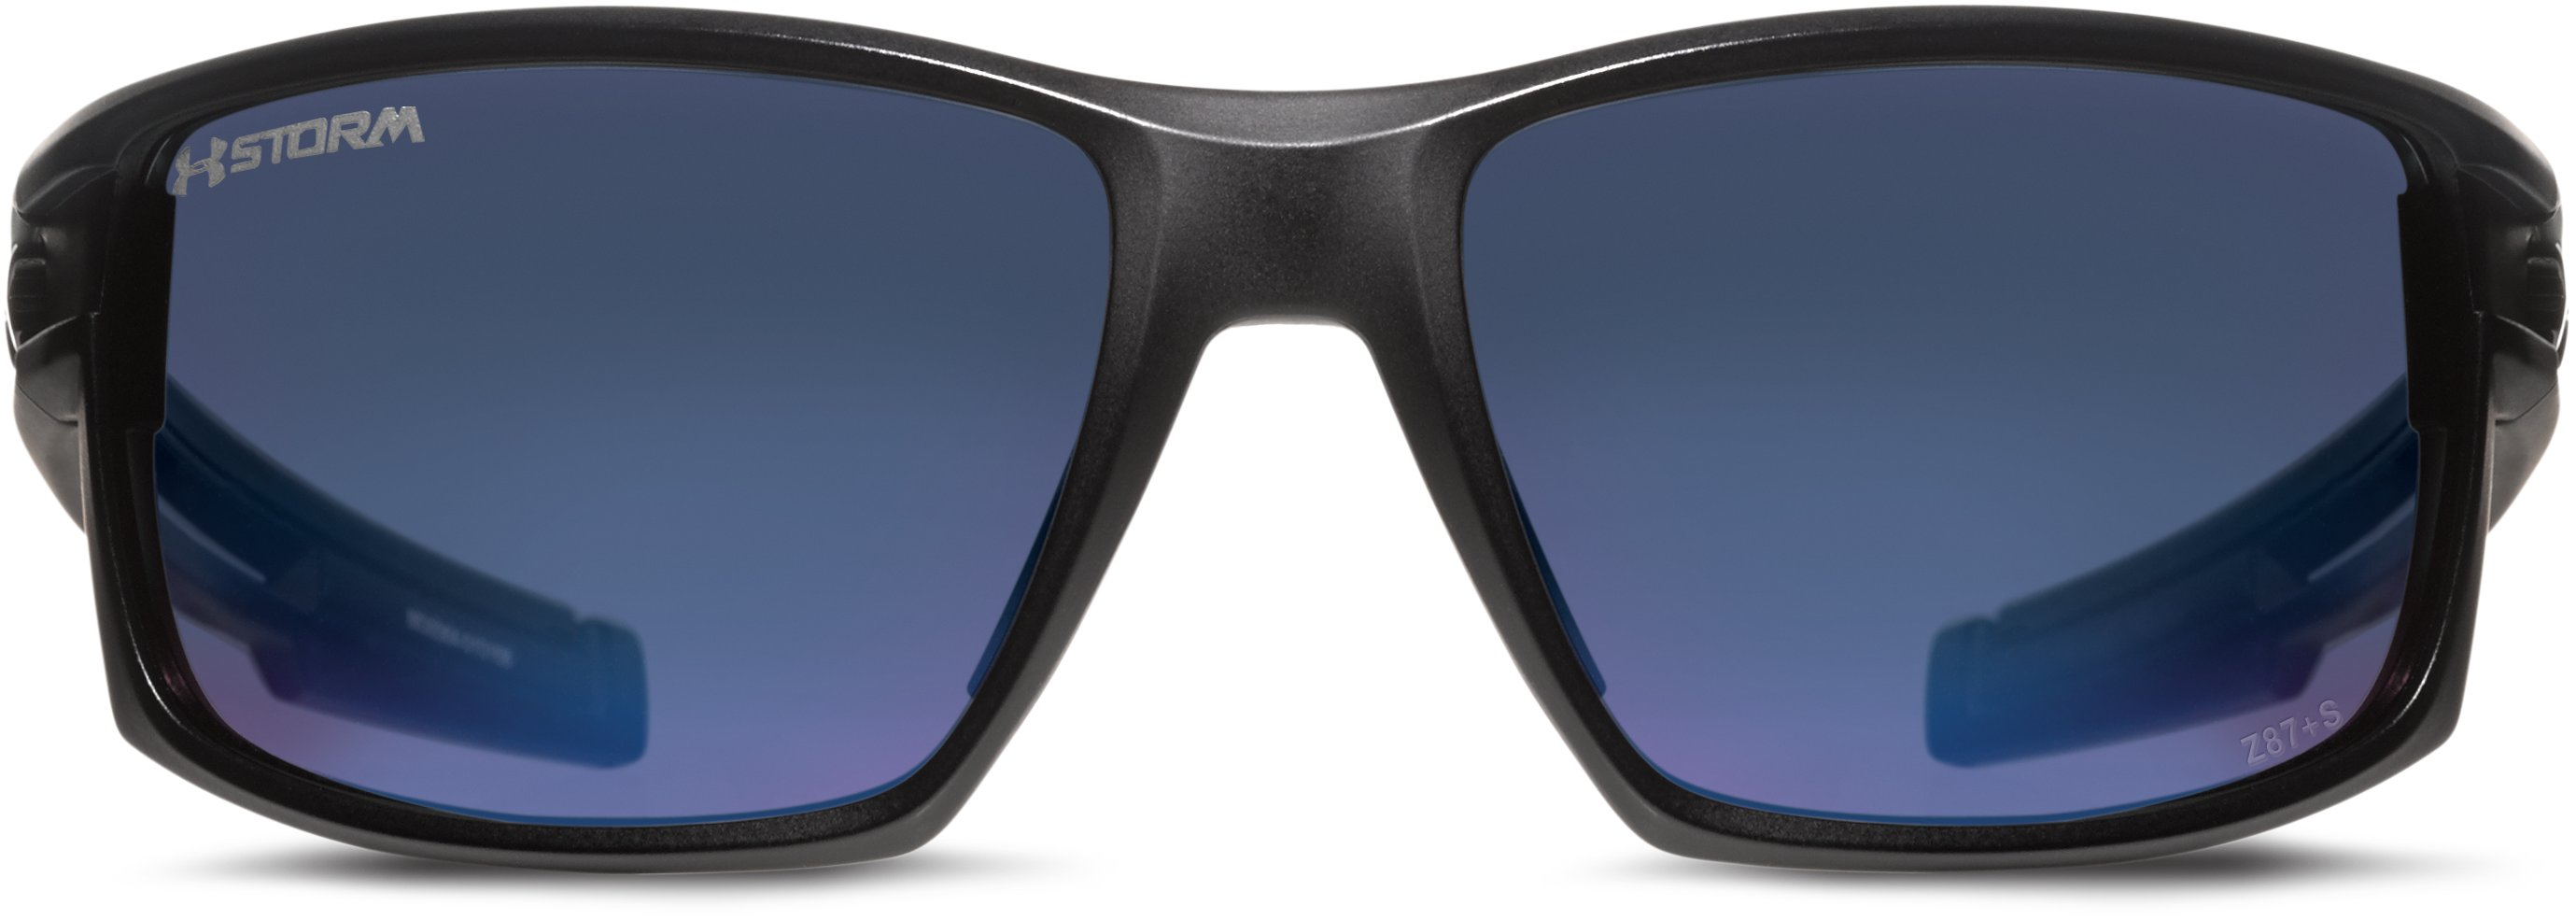 UA Captain Storm Polarized Sunglasses, Satin Black, undefined